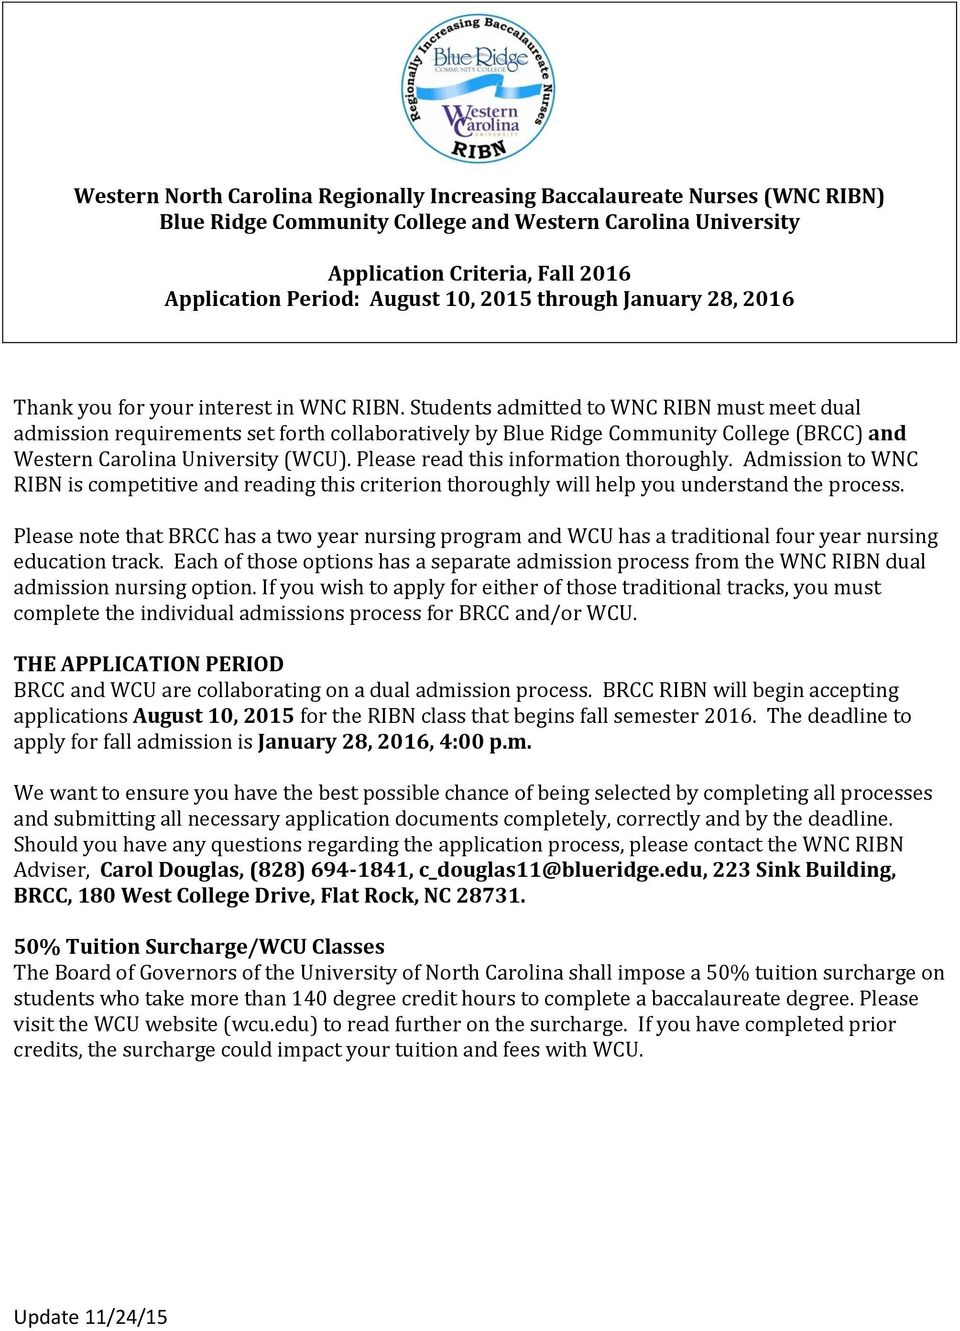 Students admitted to WNC RIBN must meet dual admission requirements set forth collaboratively by Blue Ridge Community College (BRCC) and Western Carolina University (WCU).